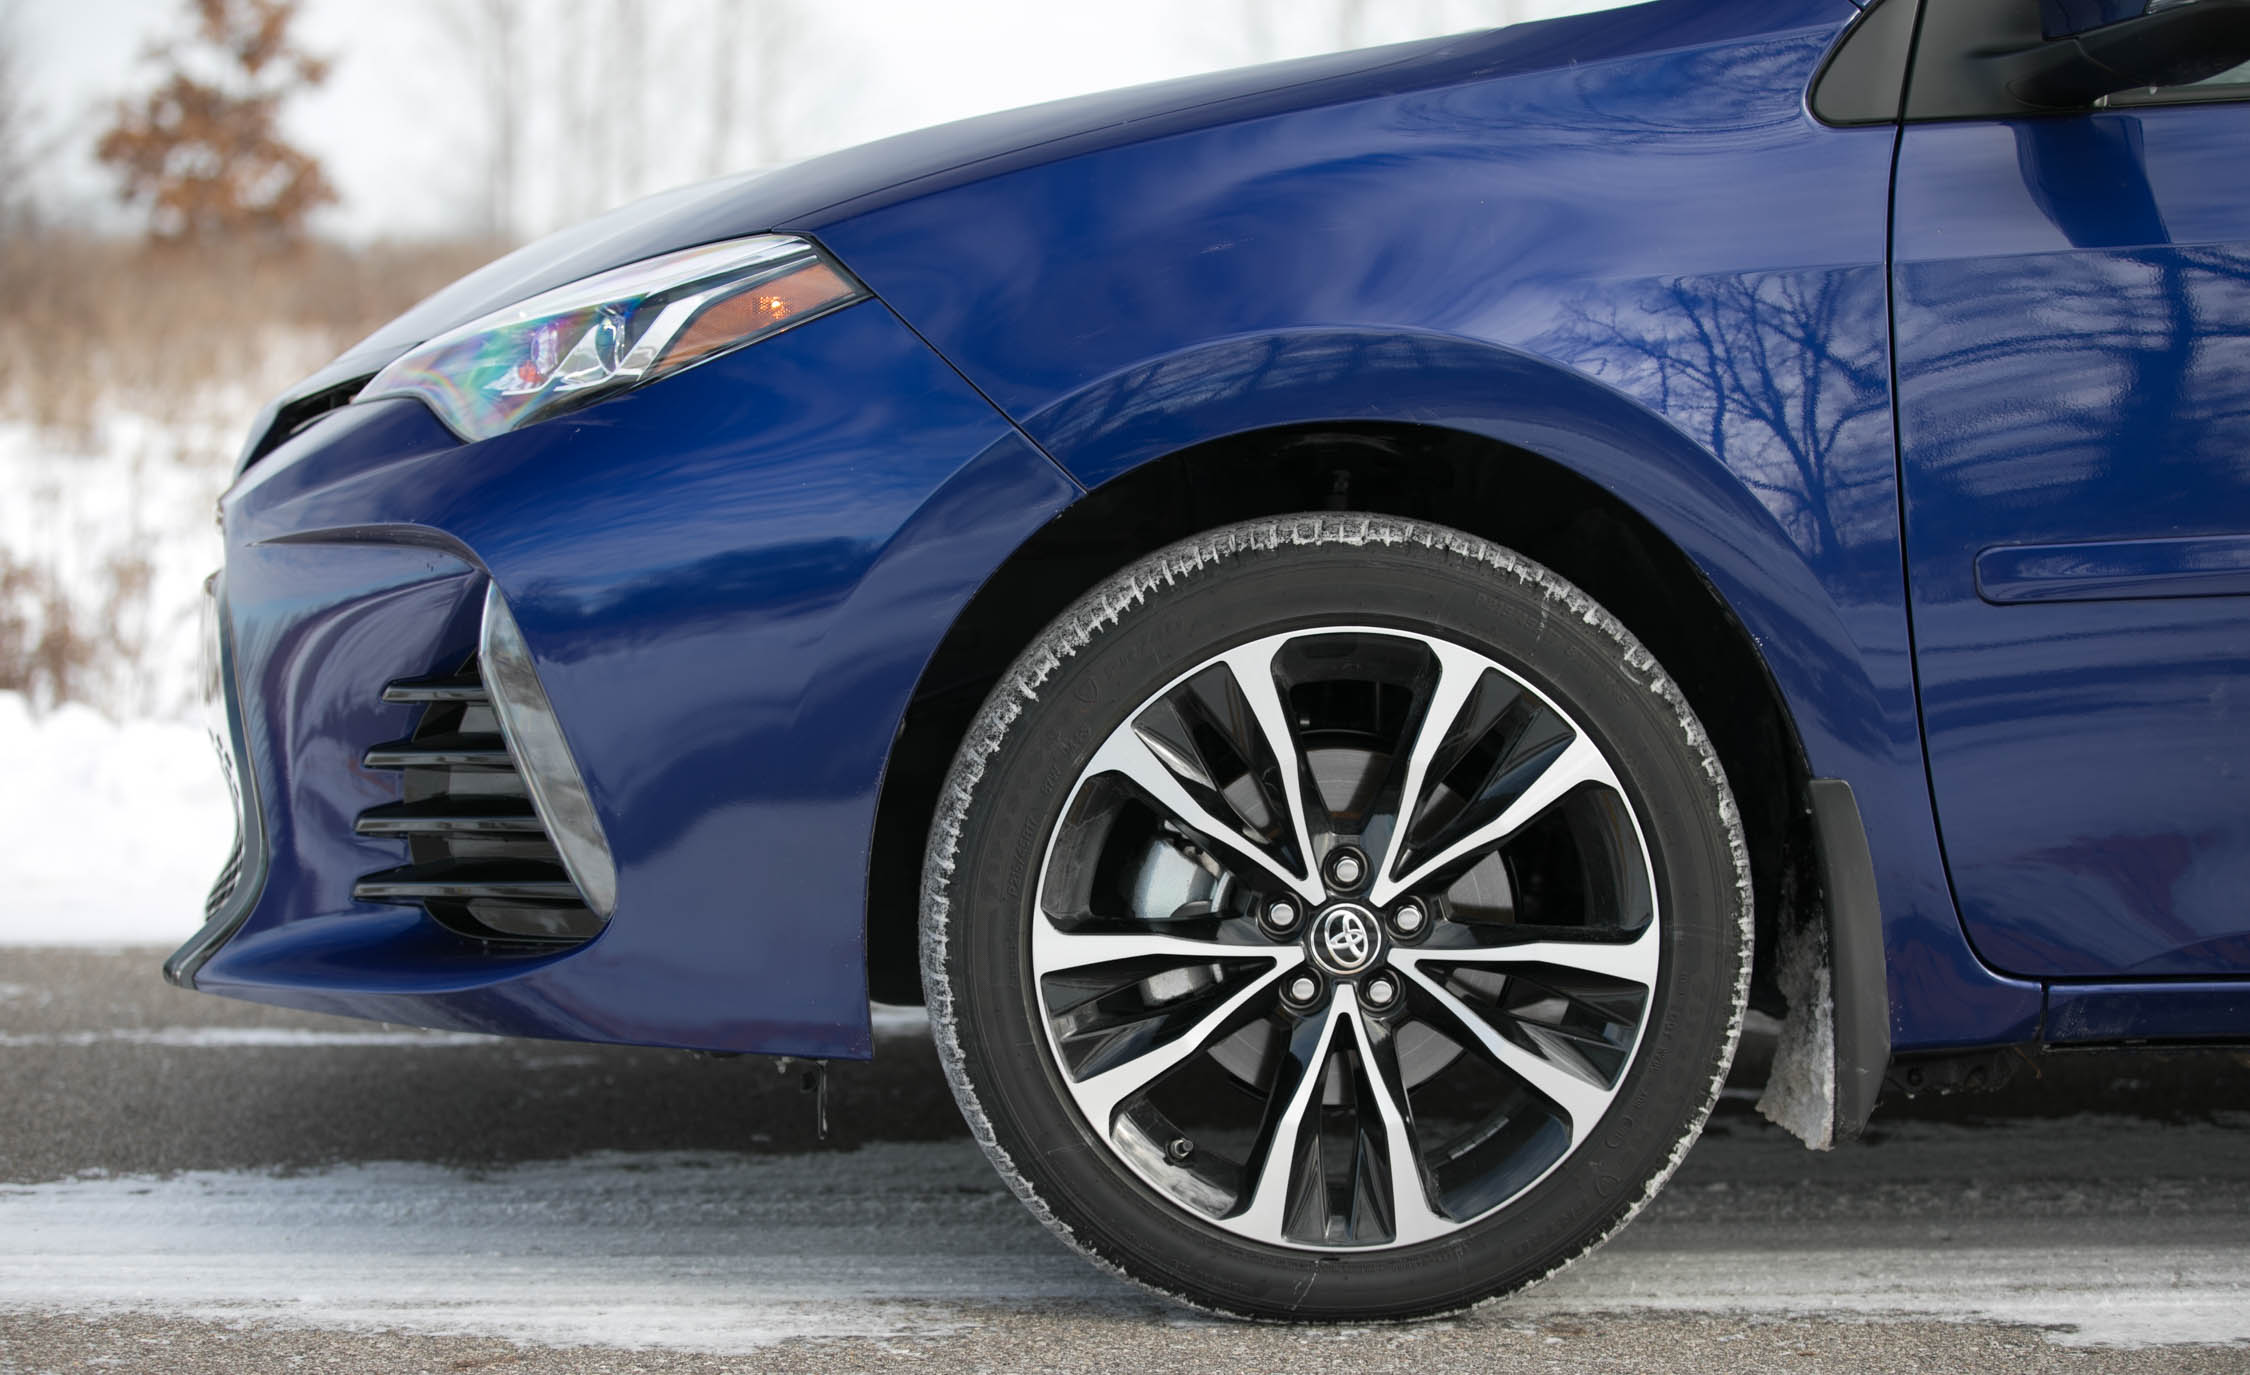 2017 Toyota Corolla XSE Exterior View Wheel Trim (Photo 48 of 75)